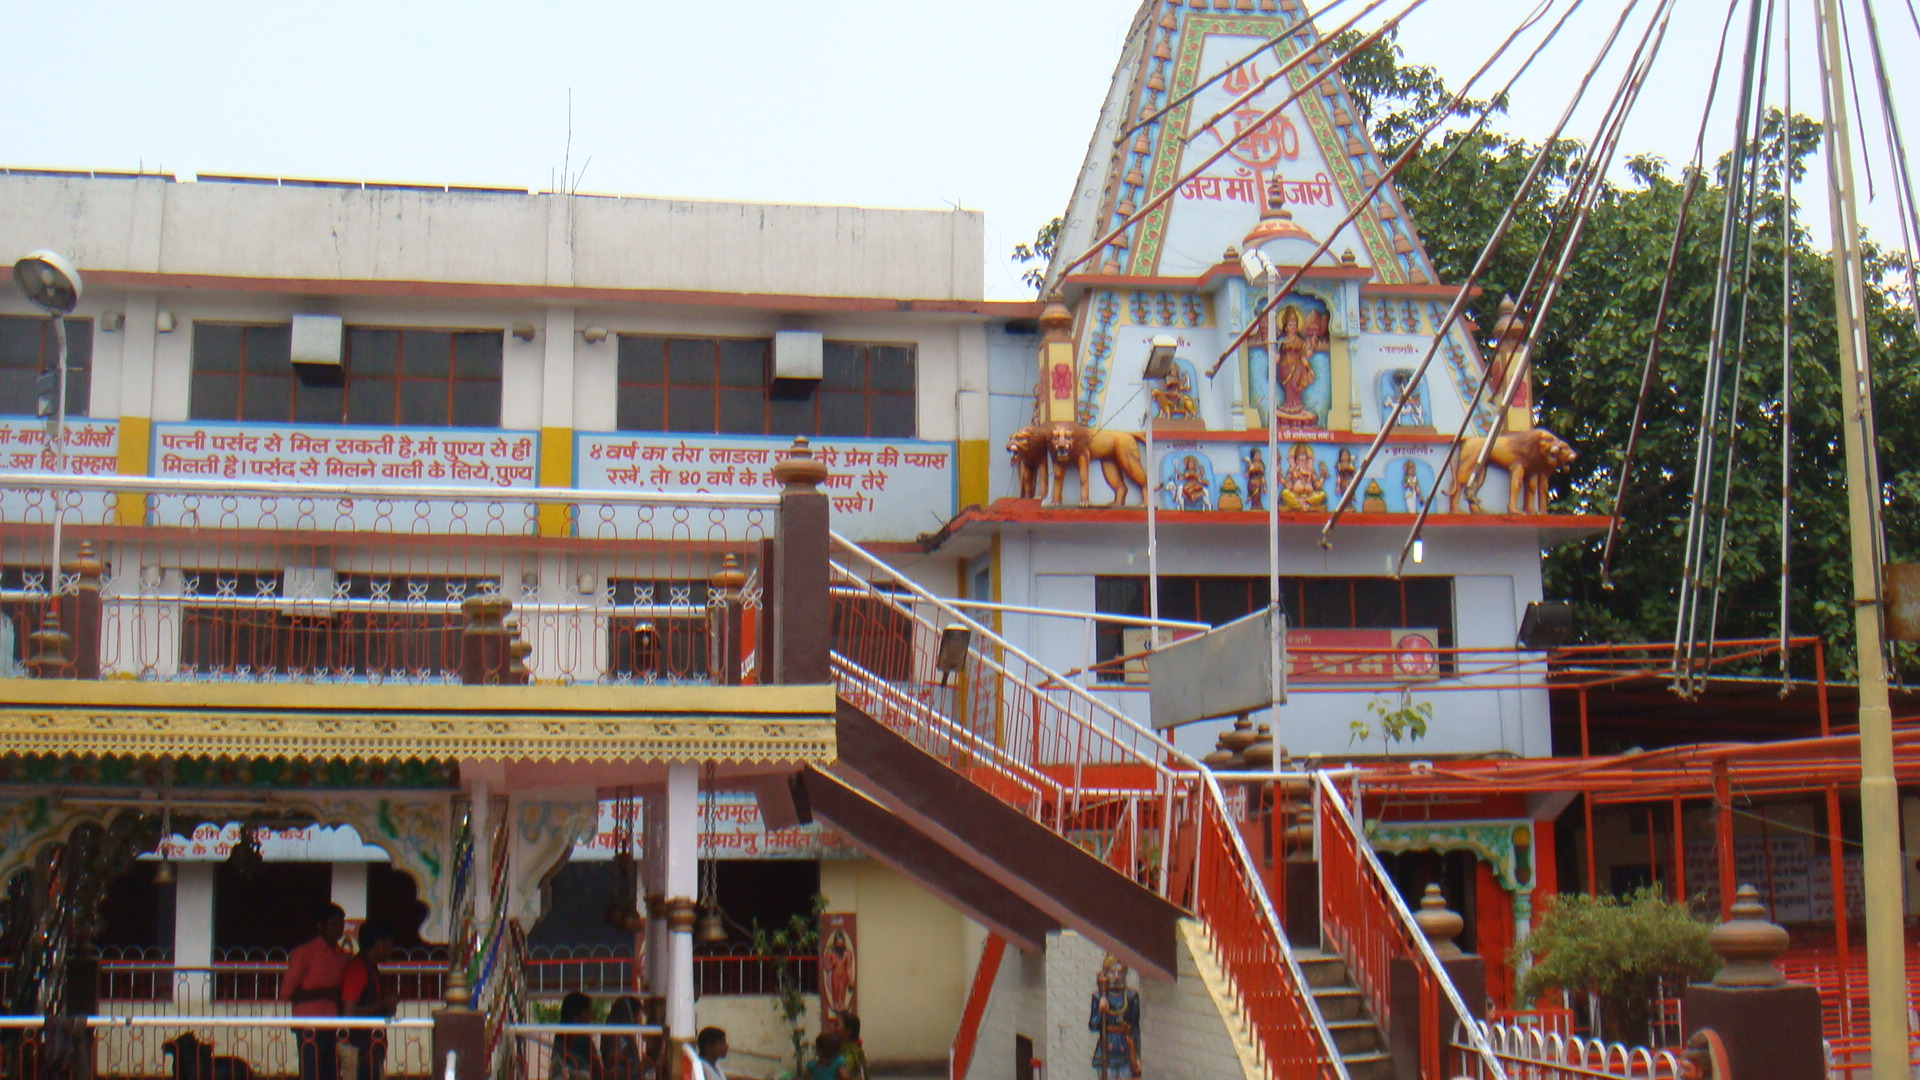 Best Place To Visit In Raipur, Chhattisgarh-Banjari Mata Mandir